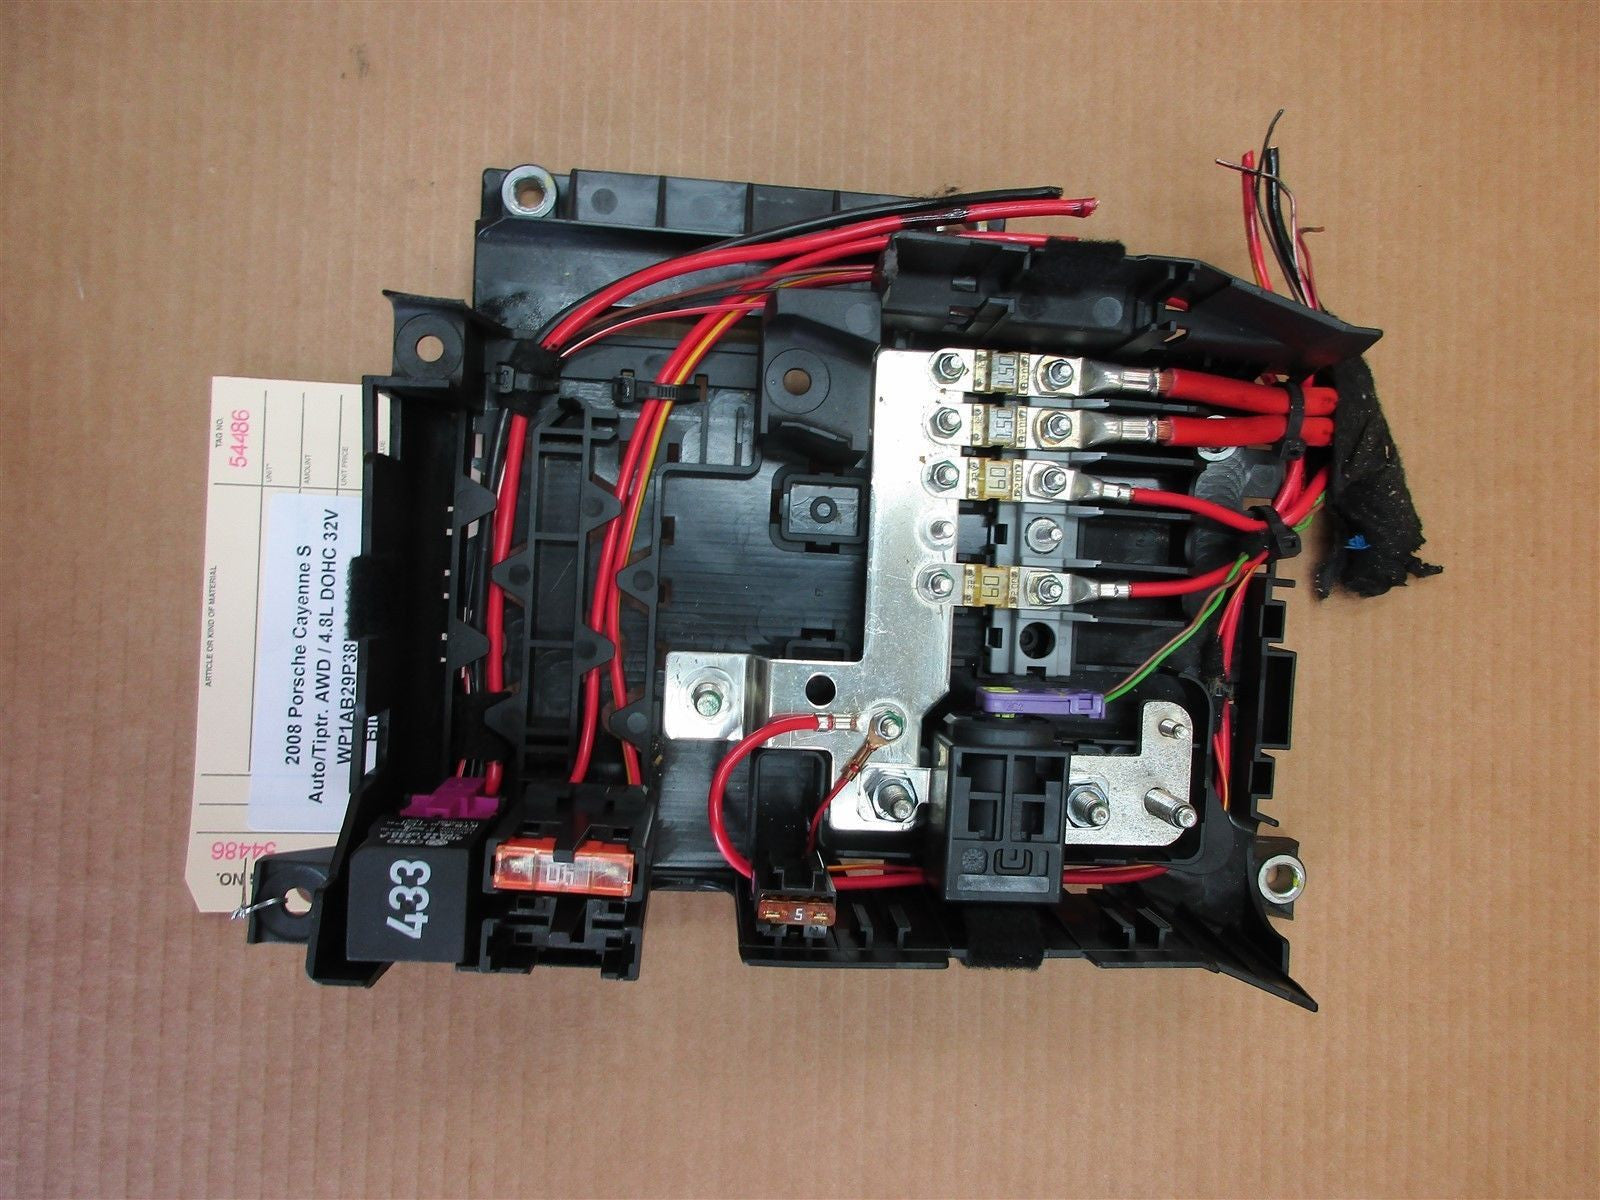 2006 Porsche Cayenne S Fuse Box Diagram Real Wiring 08 Electrical Diagrams U2022 Rh 45 77 189 151 Bmw 330i 2007 E250 Panel